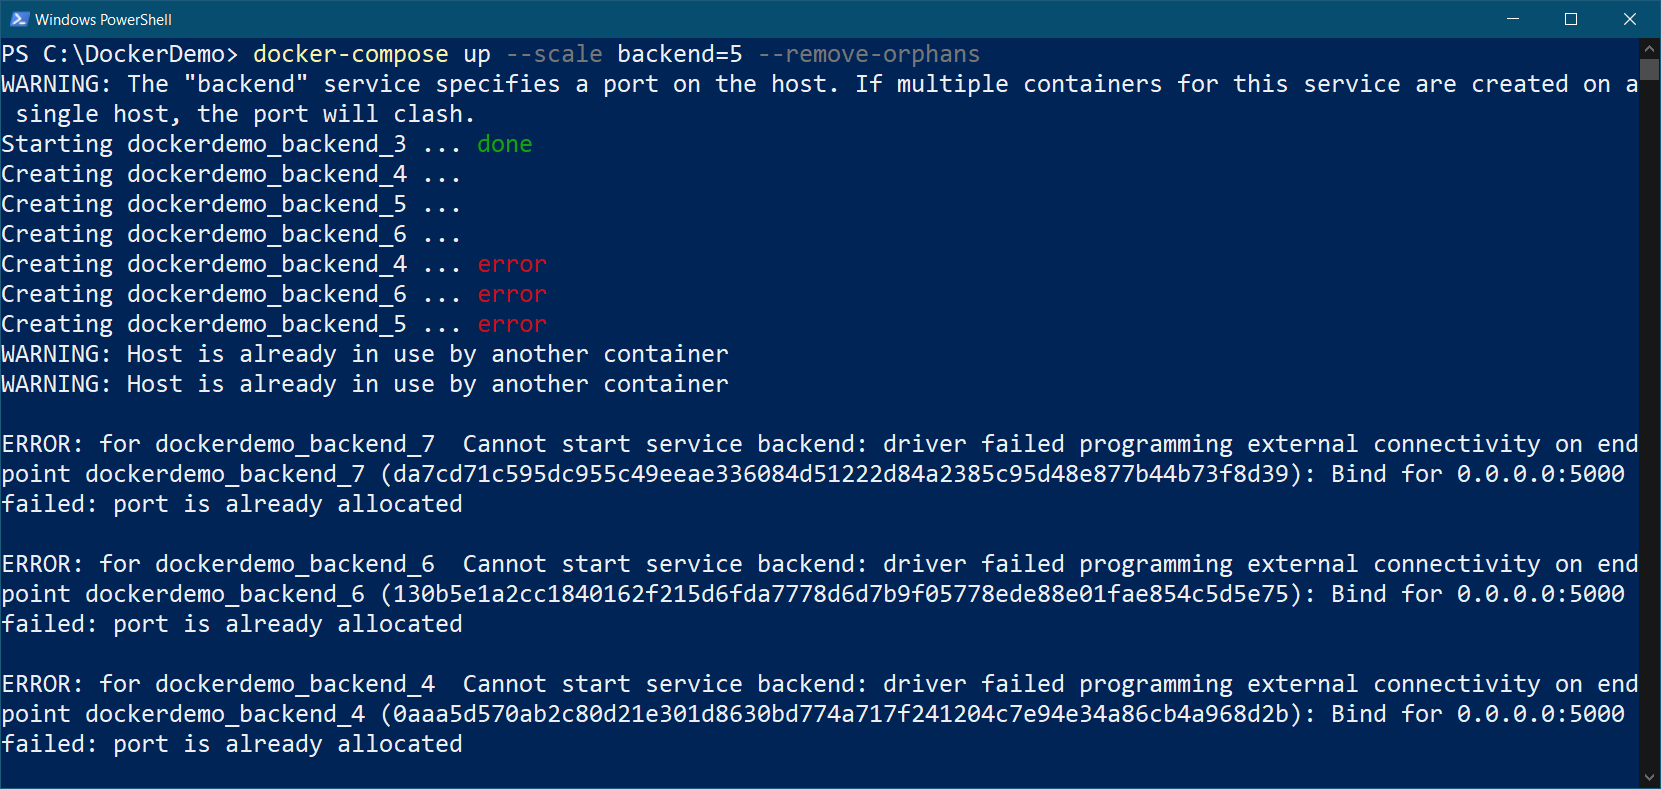 Log from Docker compose up command with Scale